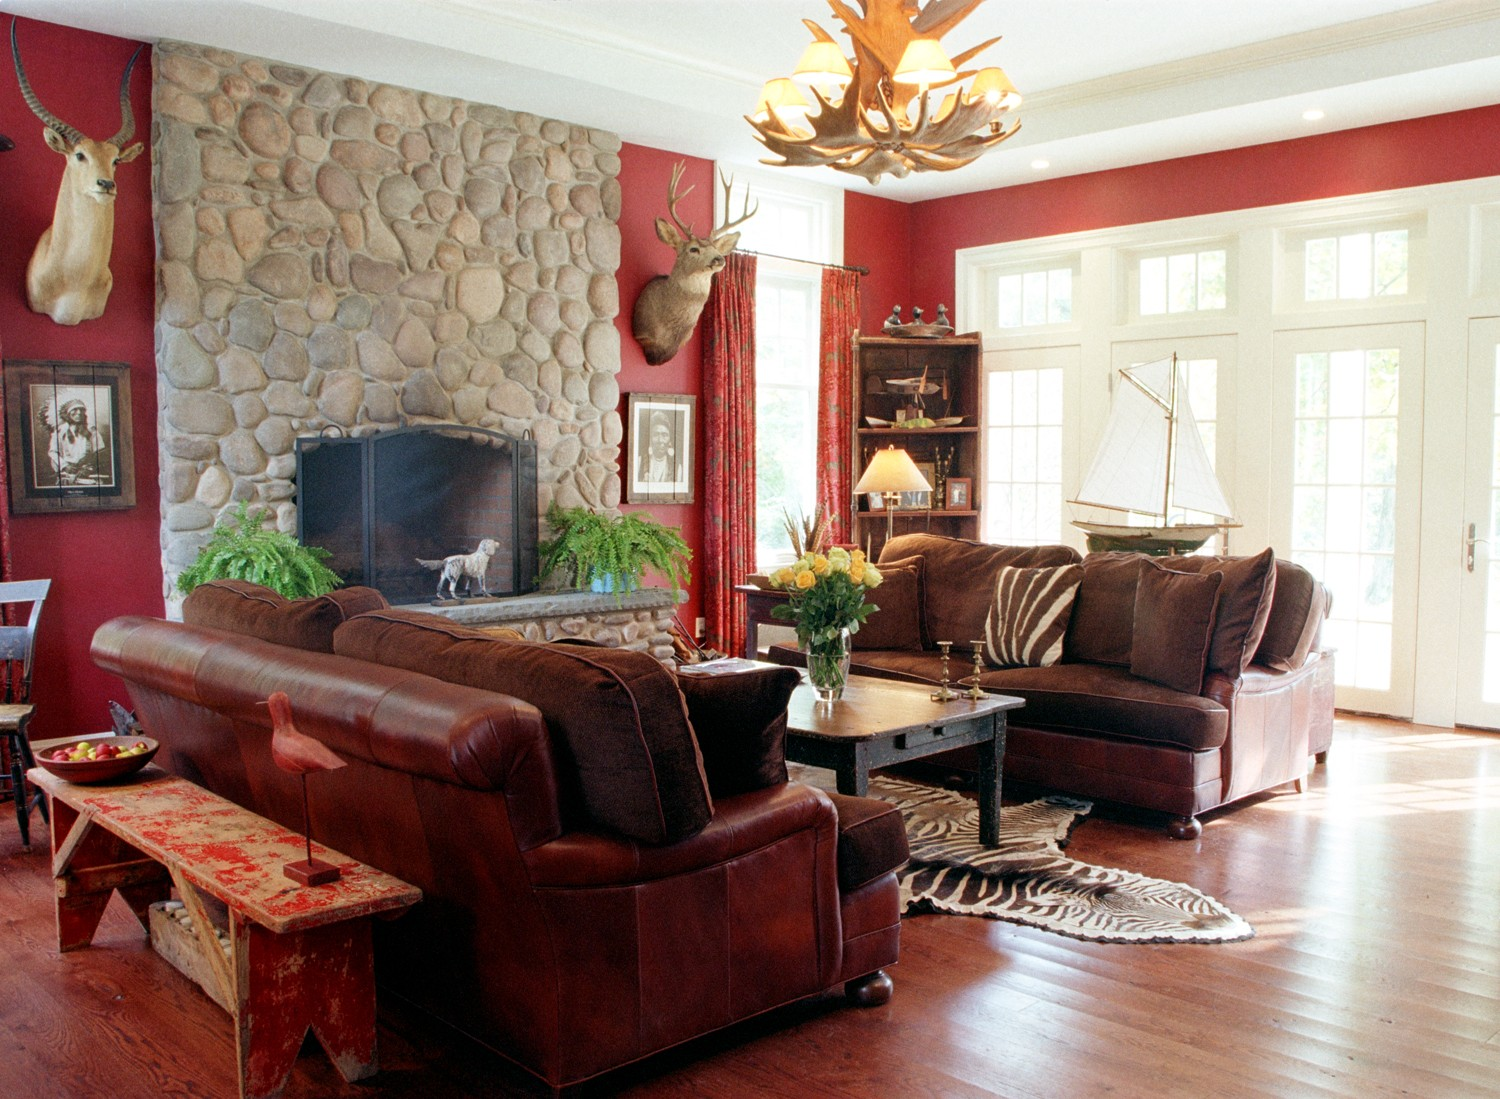 Living Room Decorating Ideas Red Walls red living room decorations - hypnofitmaui